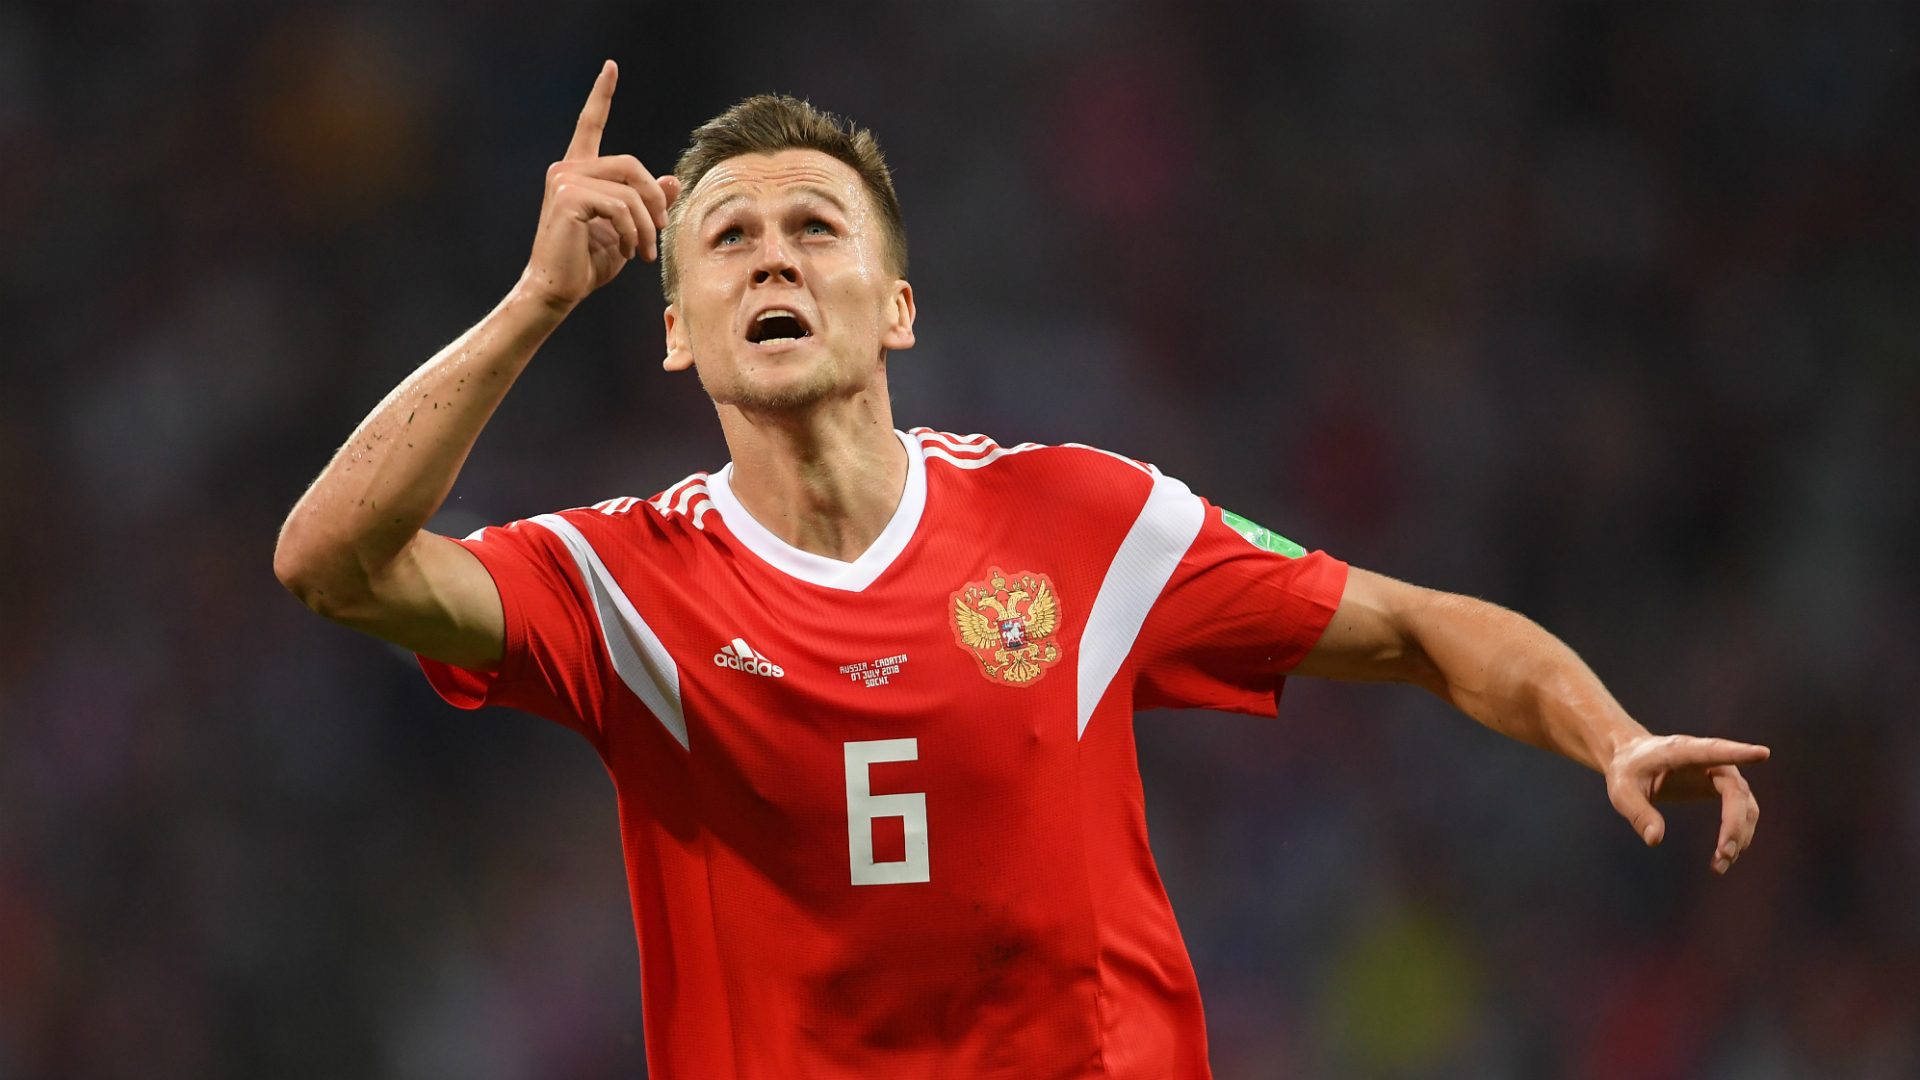 Cheryshev cleared after doping investigation